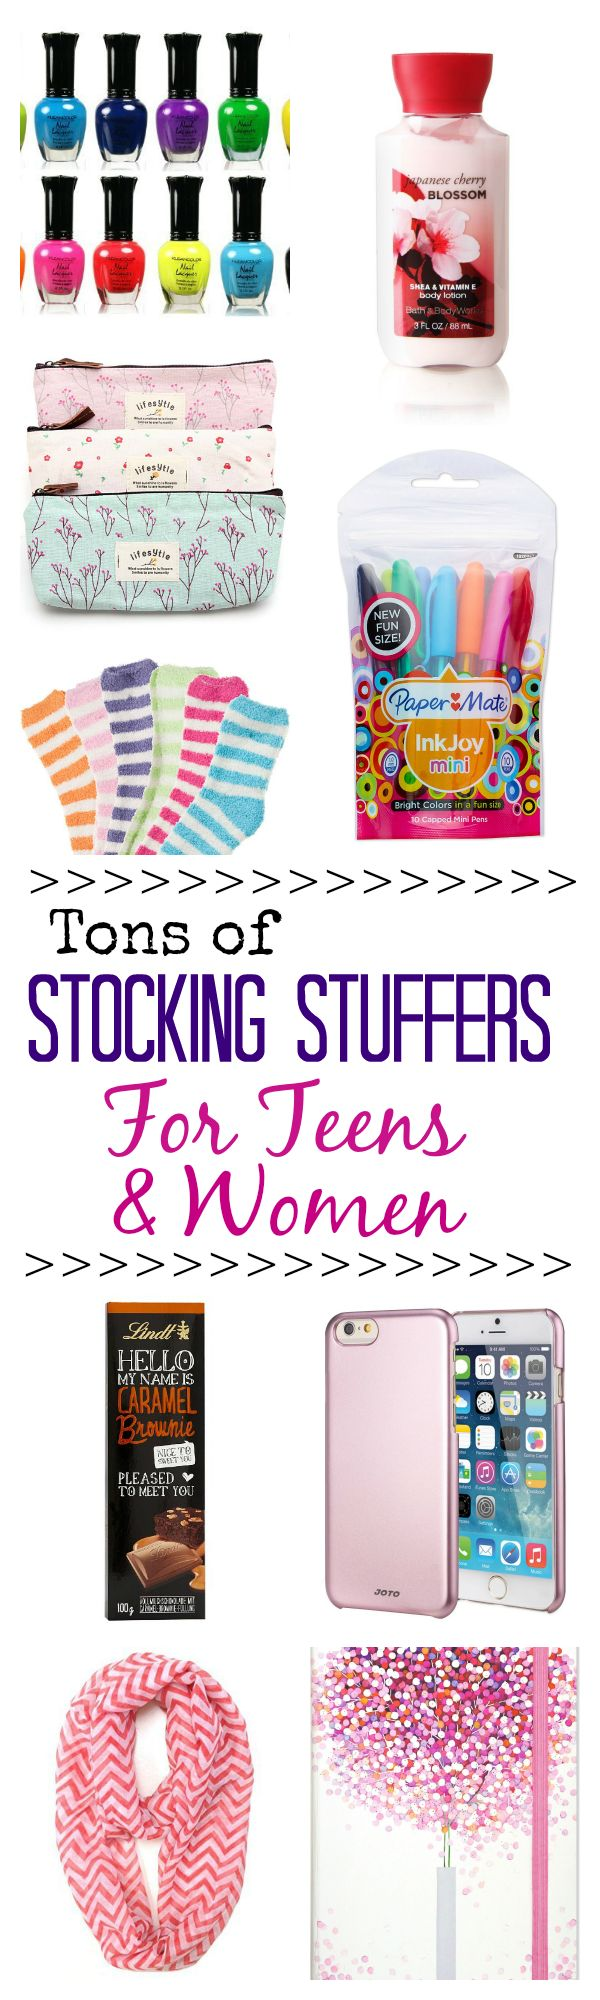 Best 25+ Stocking stuffers ideas on Pinterest | Christmas stocking ...